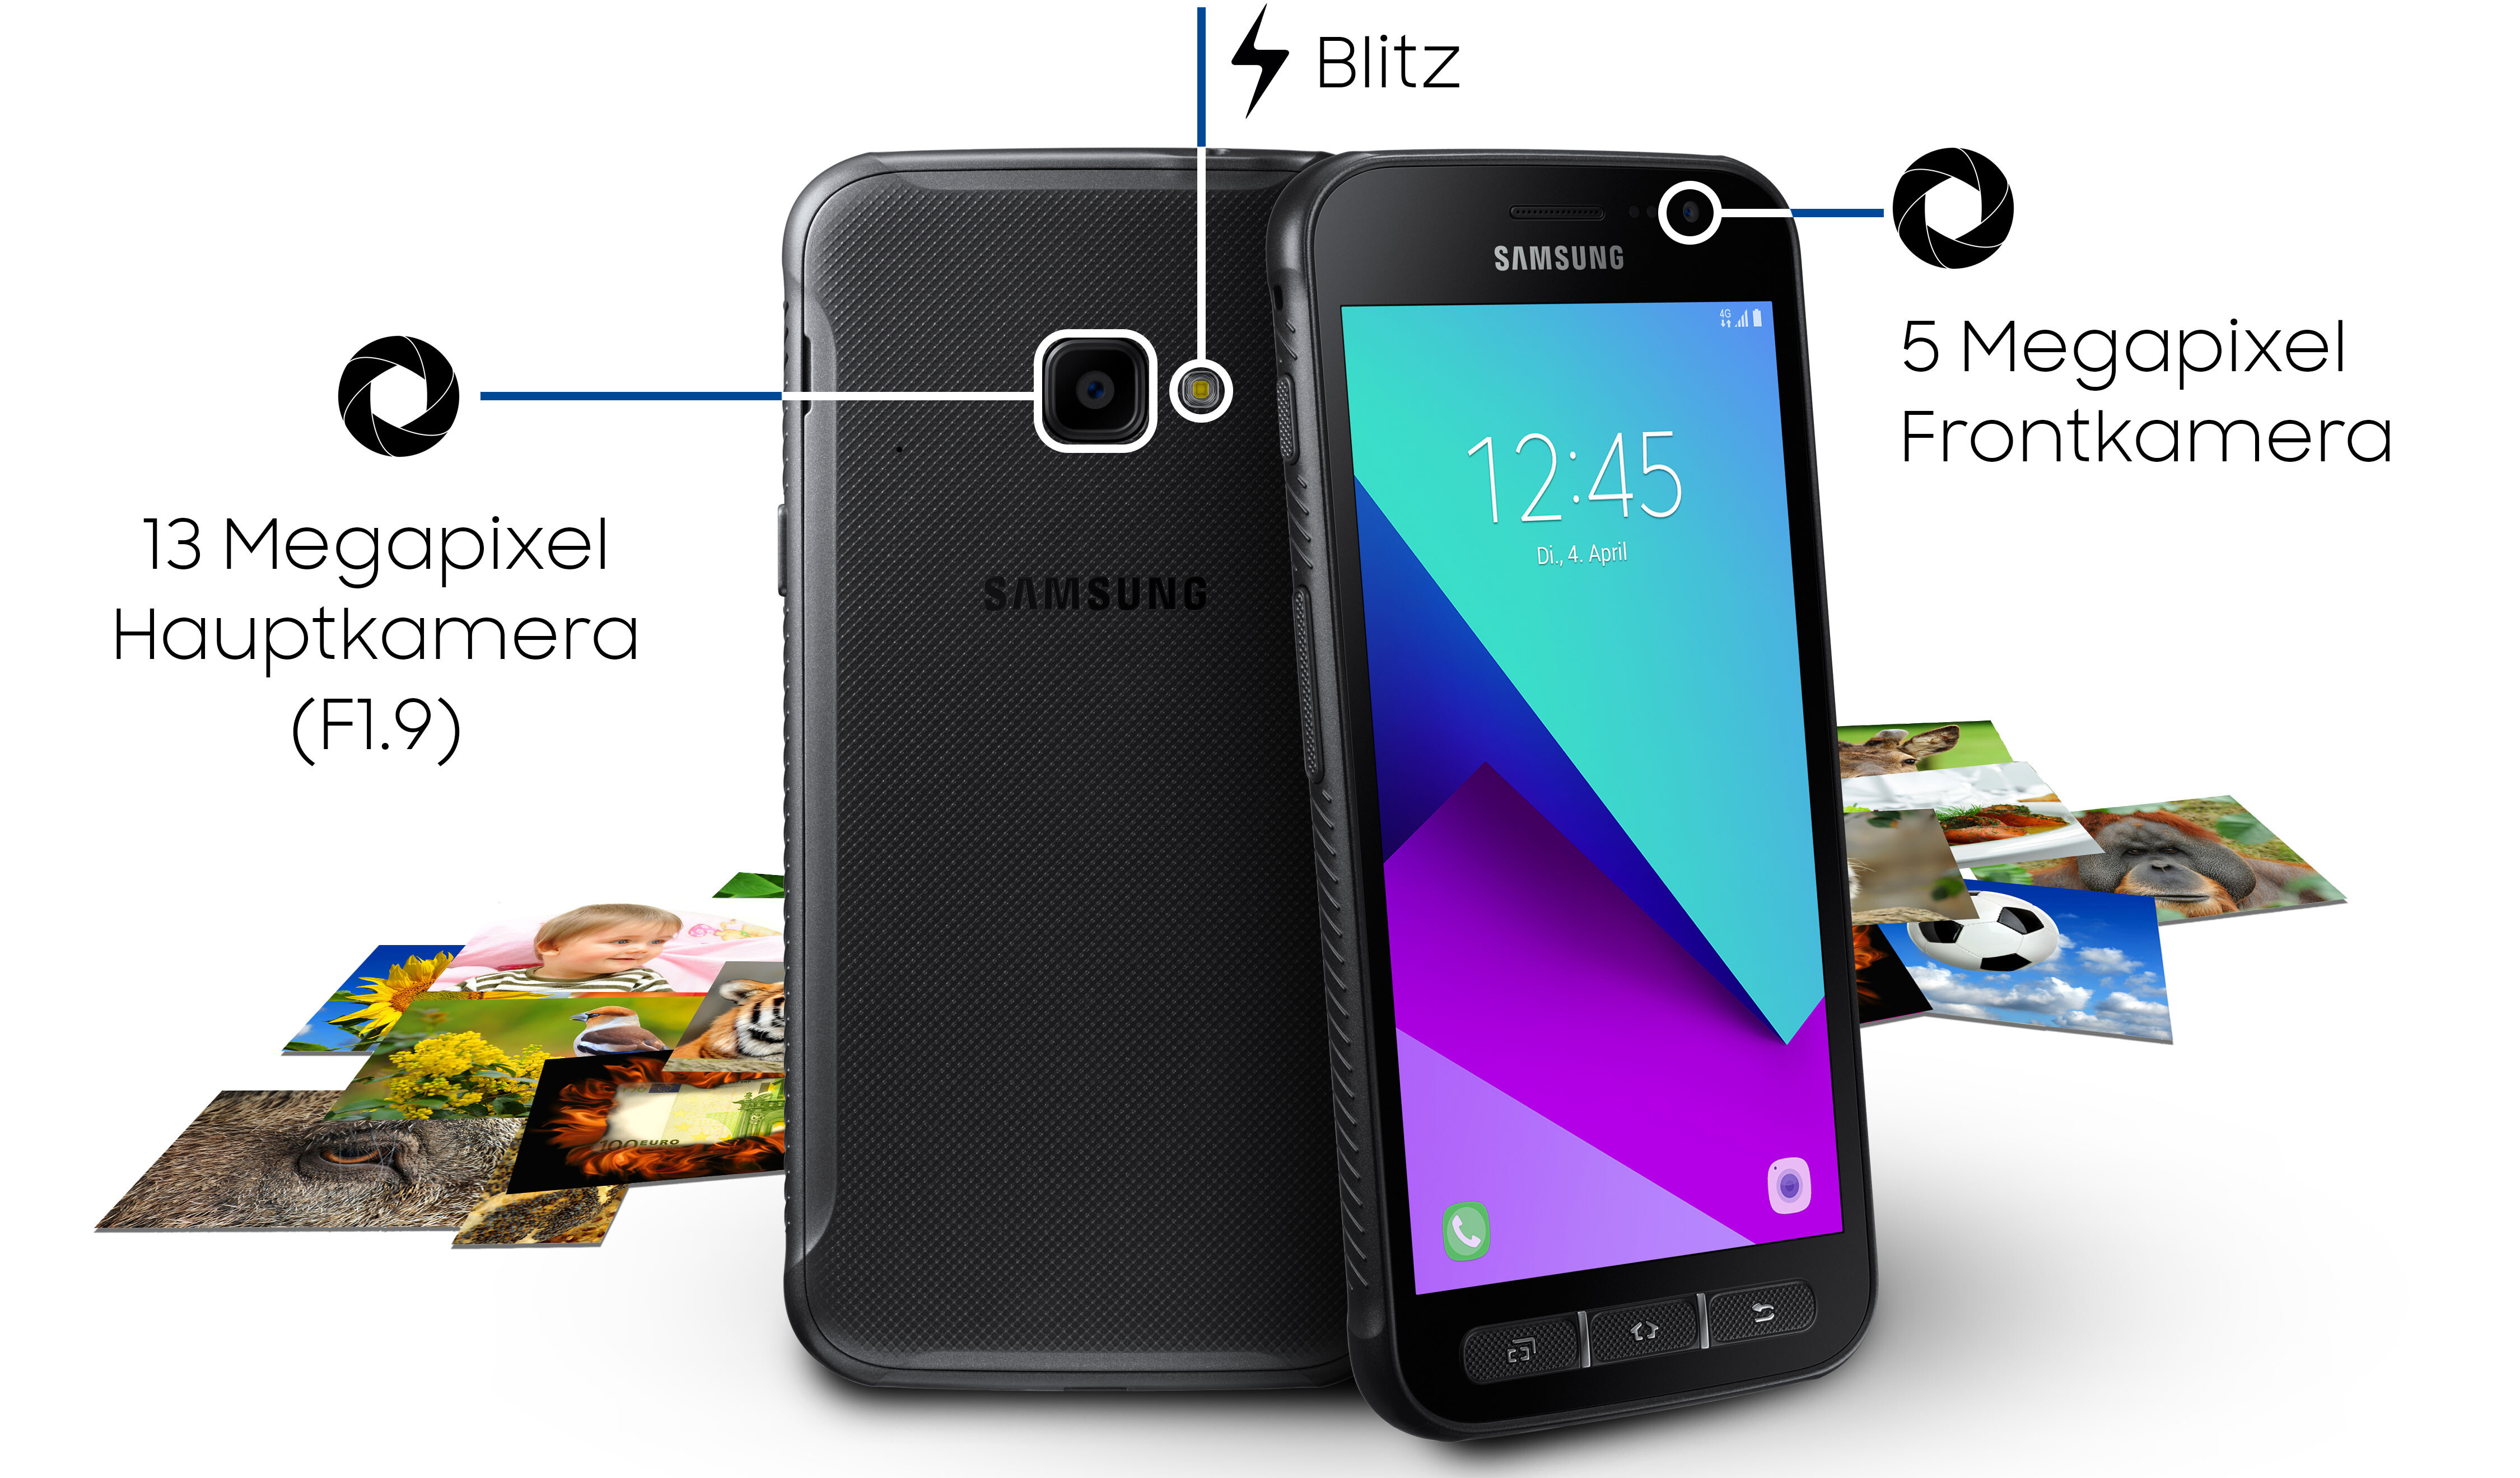 new product 0e4ca f1210 Samsung Galaxy Xcover 4 coming to the Unites States in April/June ...